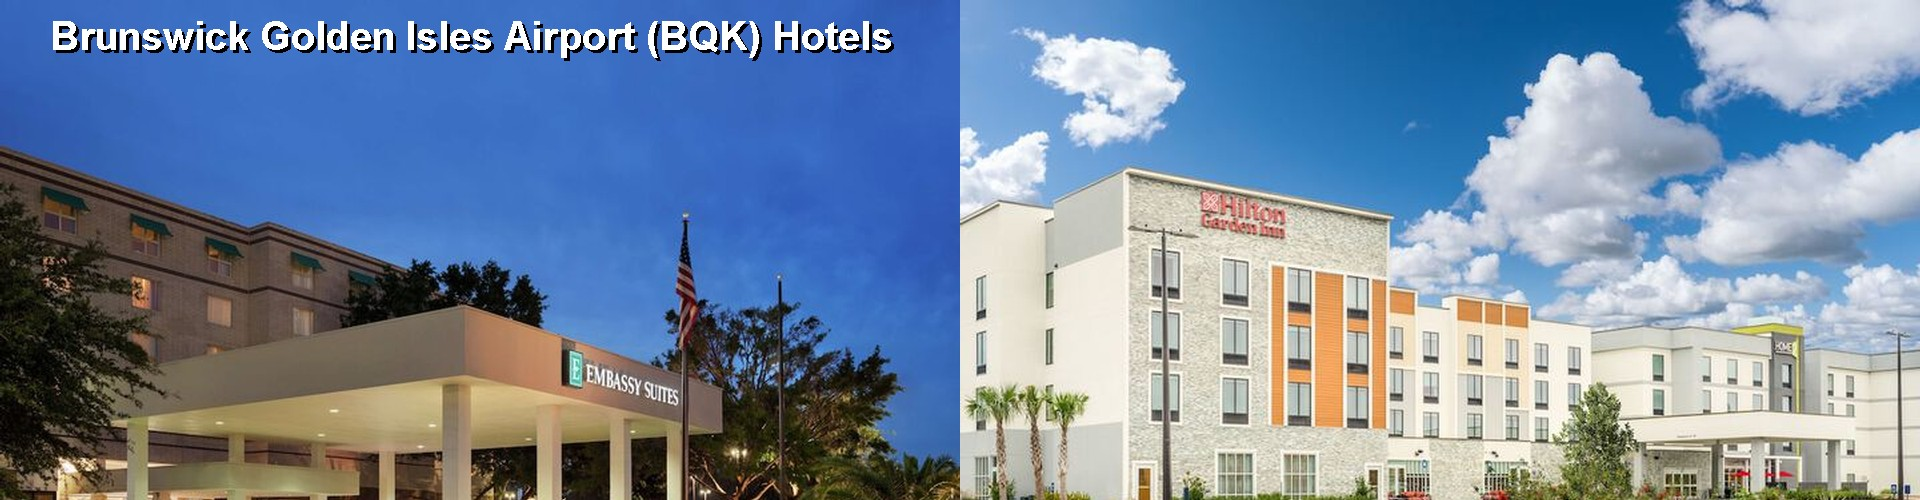 5 Best Hotels near Brunswick Golden Isles Airport (BQK)